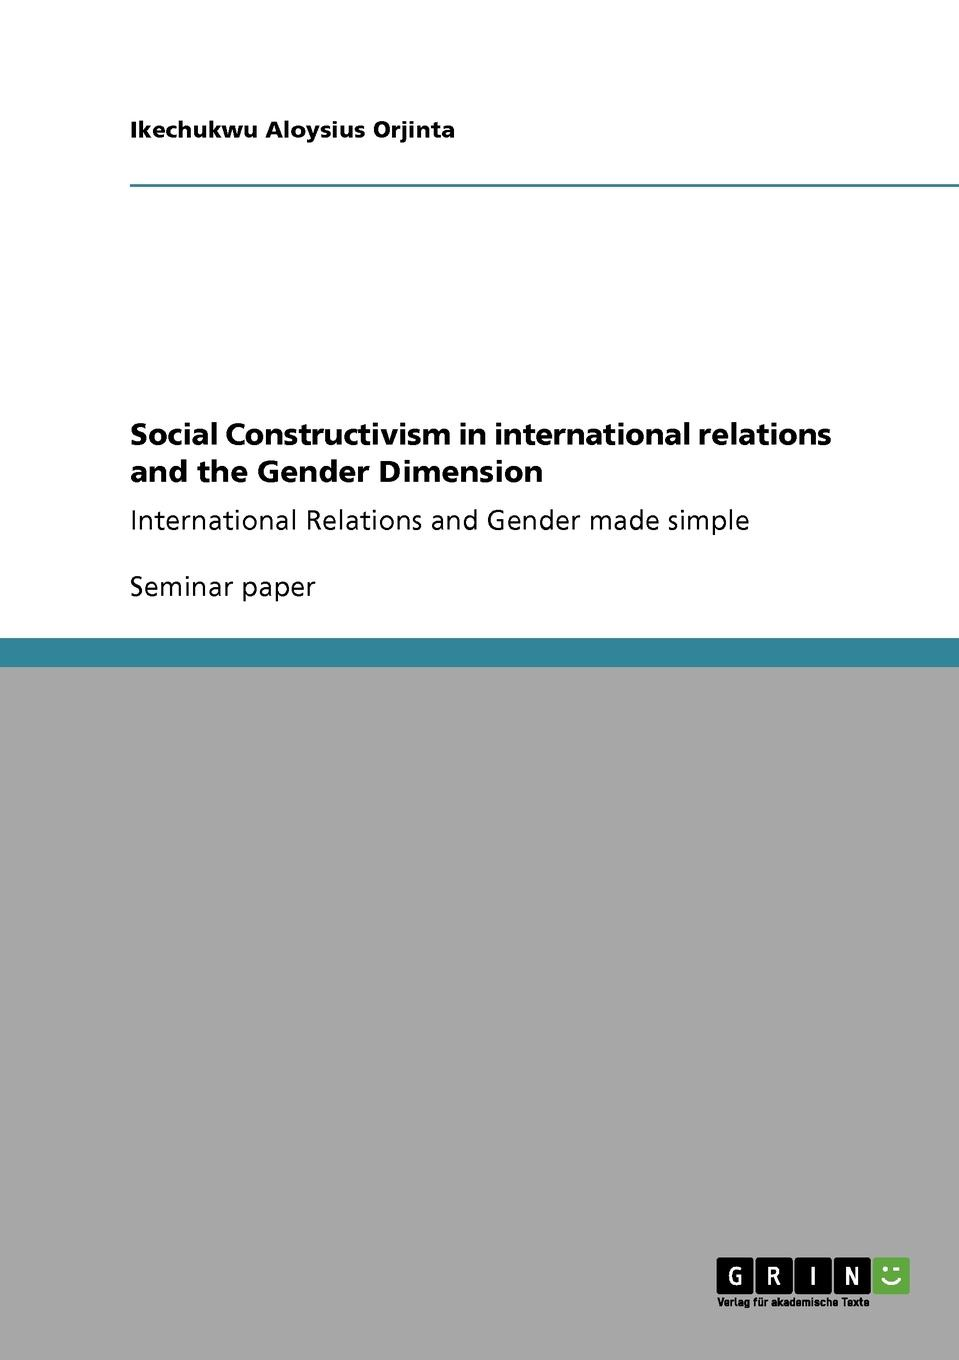 лучшая цена Ikechukwu Aloysius Orjinta Social Constructivism in international relations and the Gender Dimension